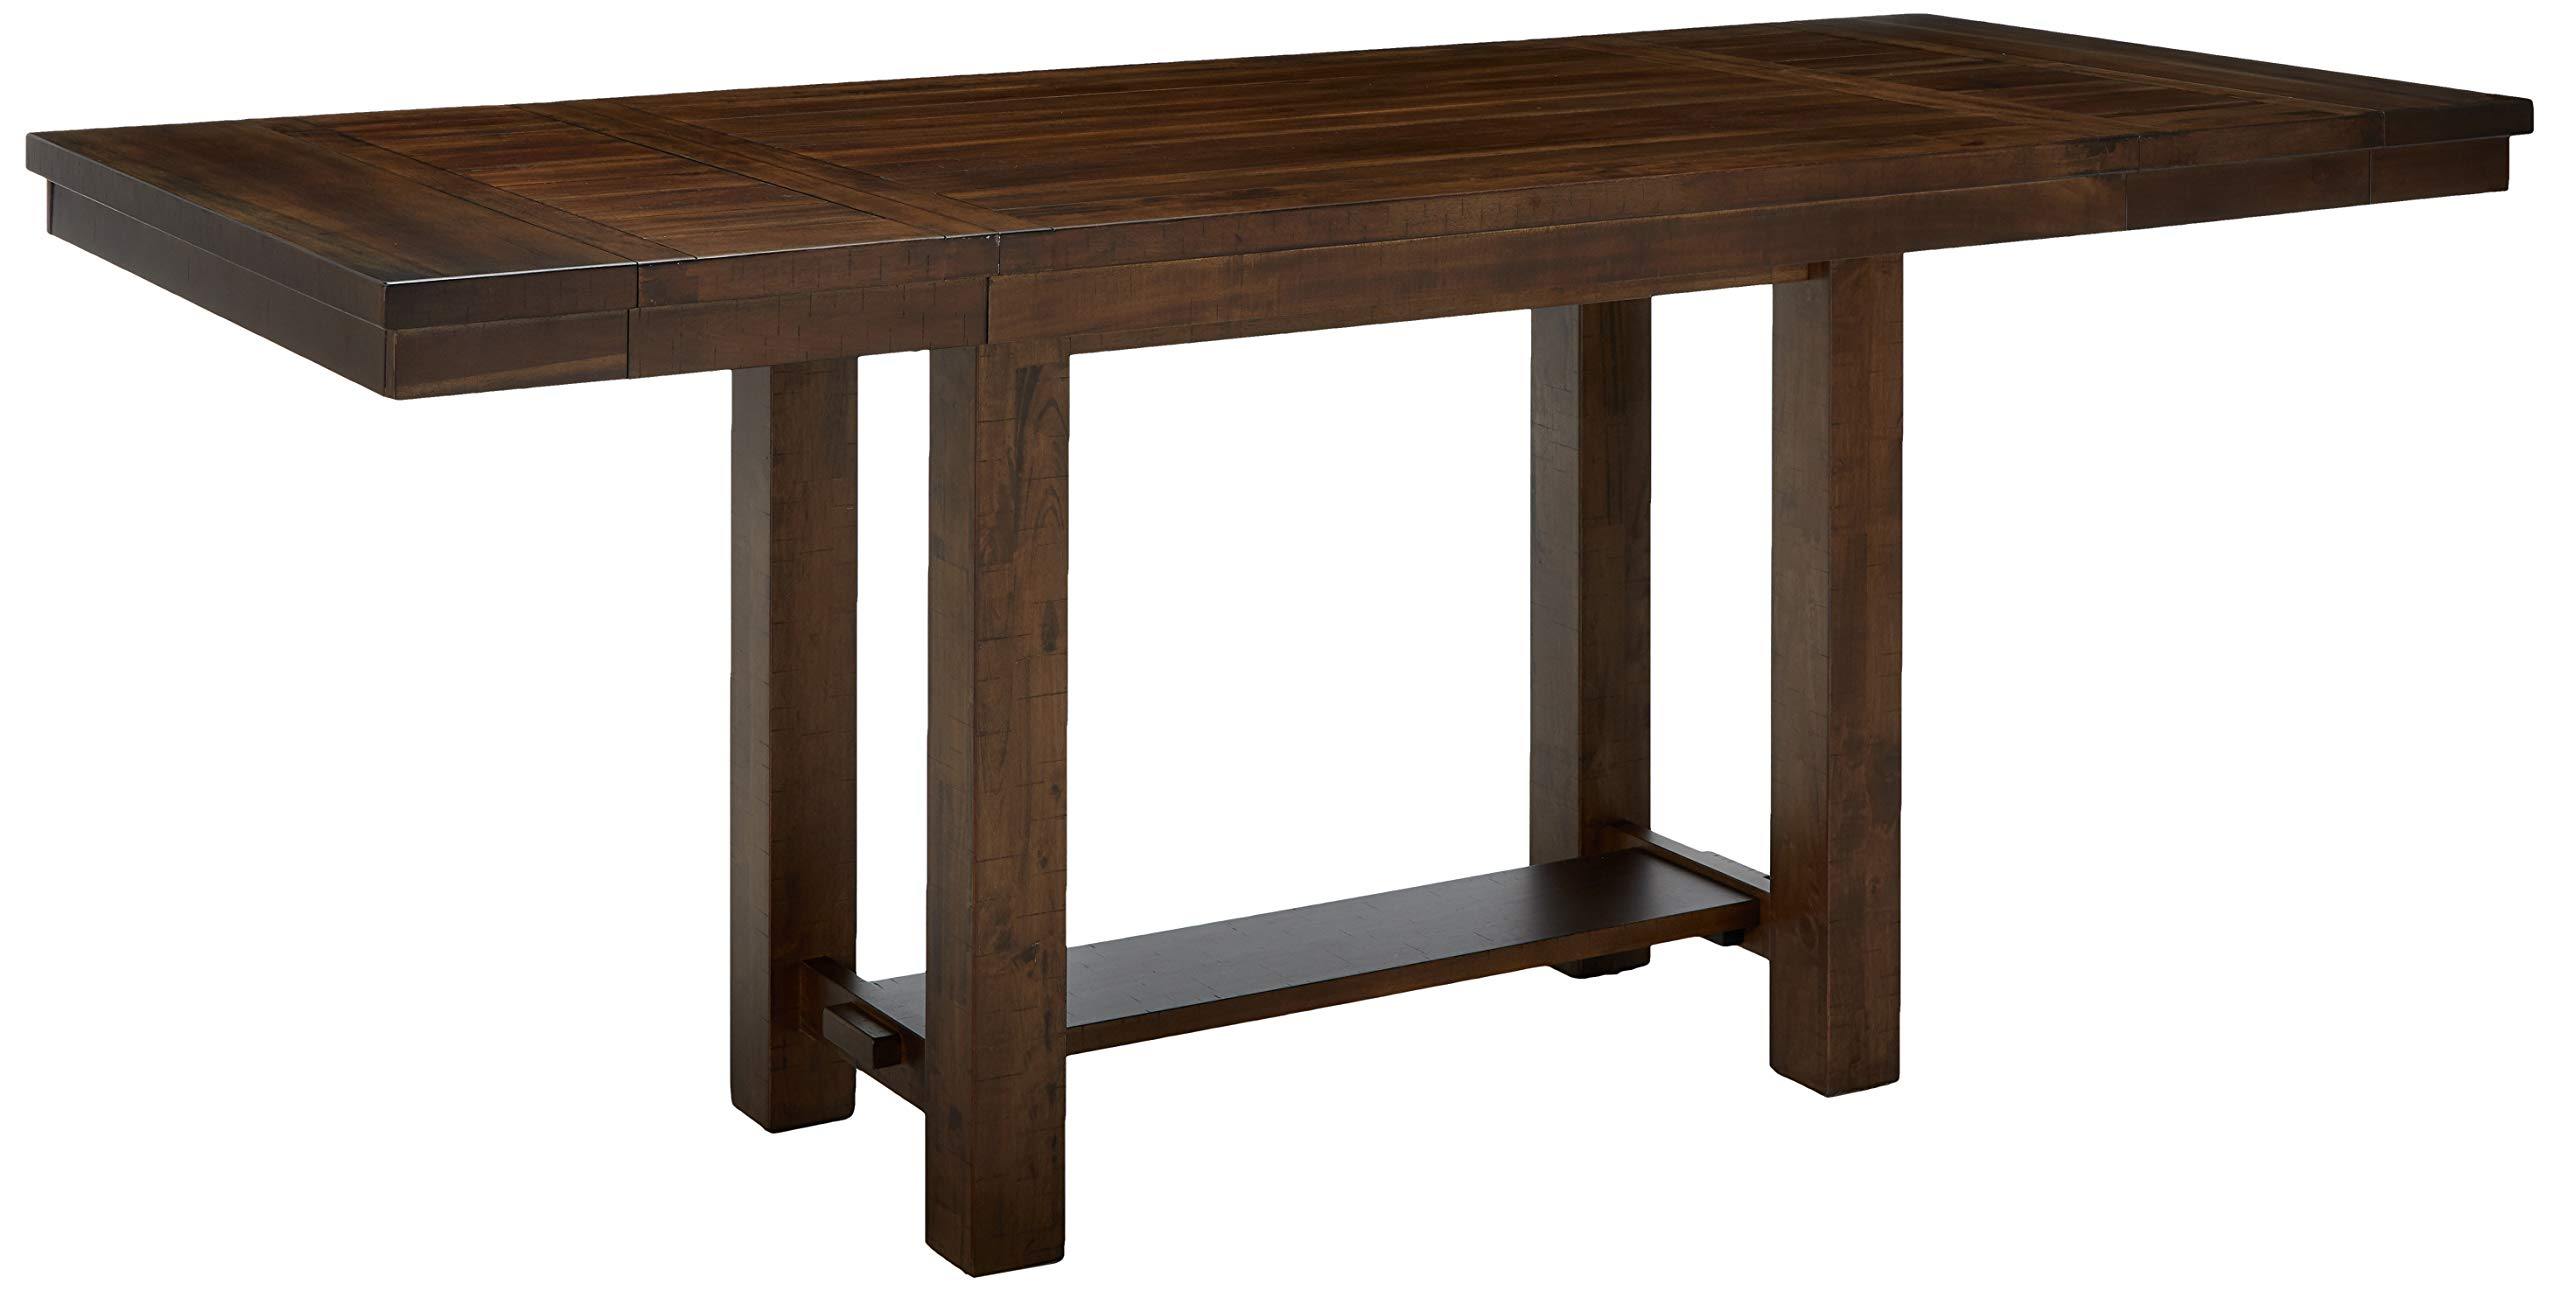 Ashley Furniture Signature Design - Moriville Counter Height Dining Room Table - Grayish Brown by Signature Design by Ashley